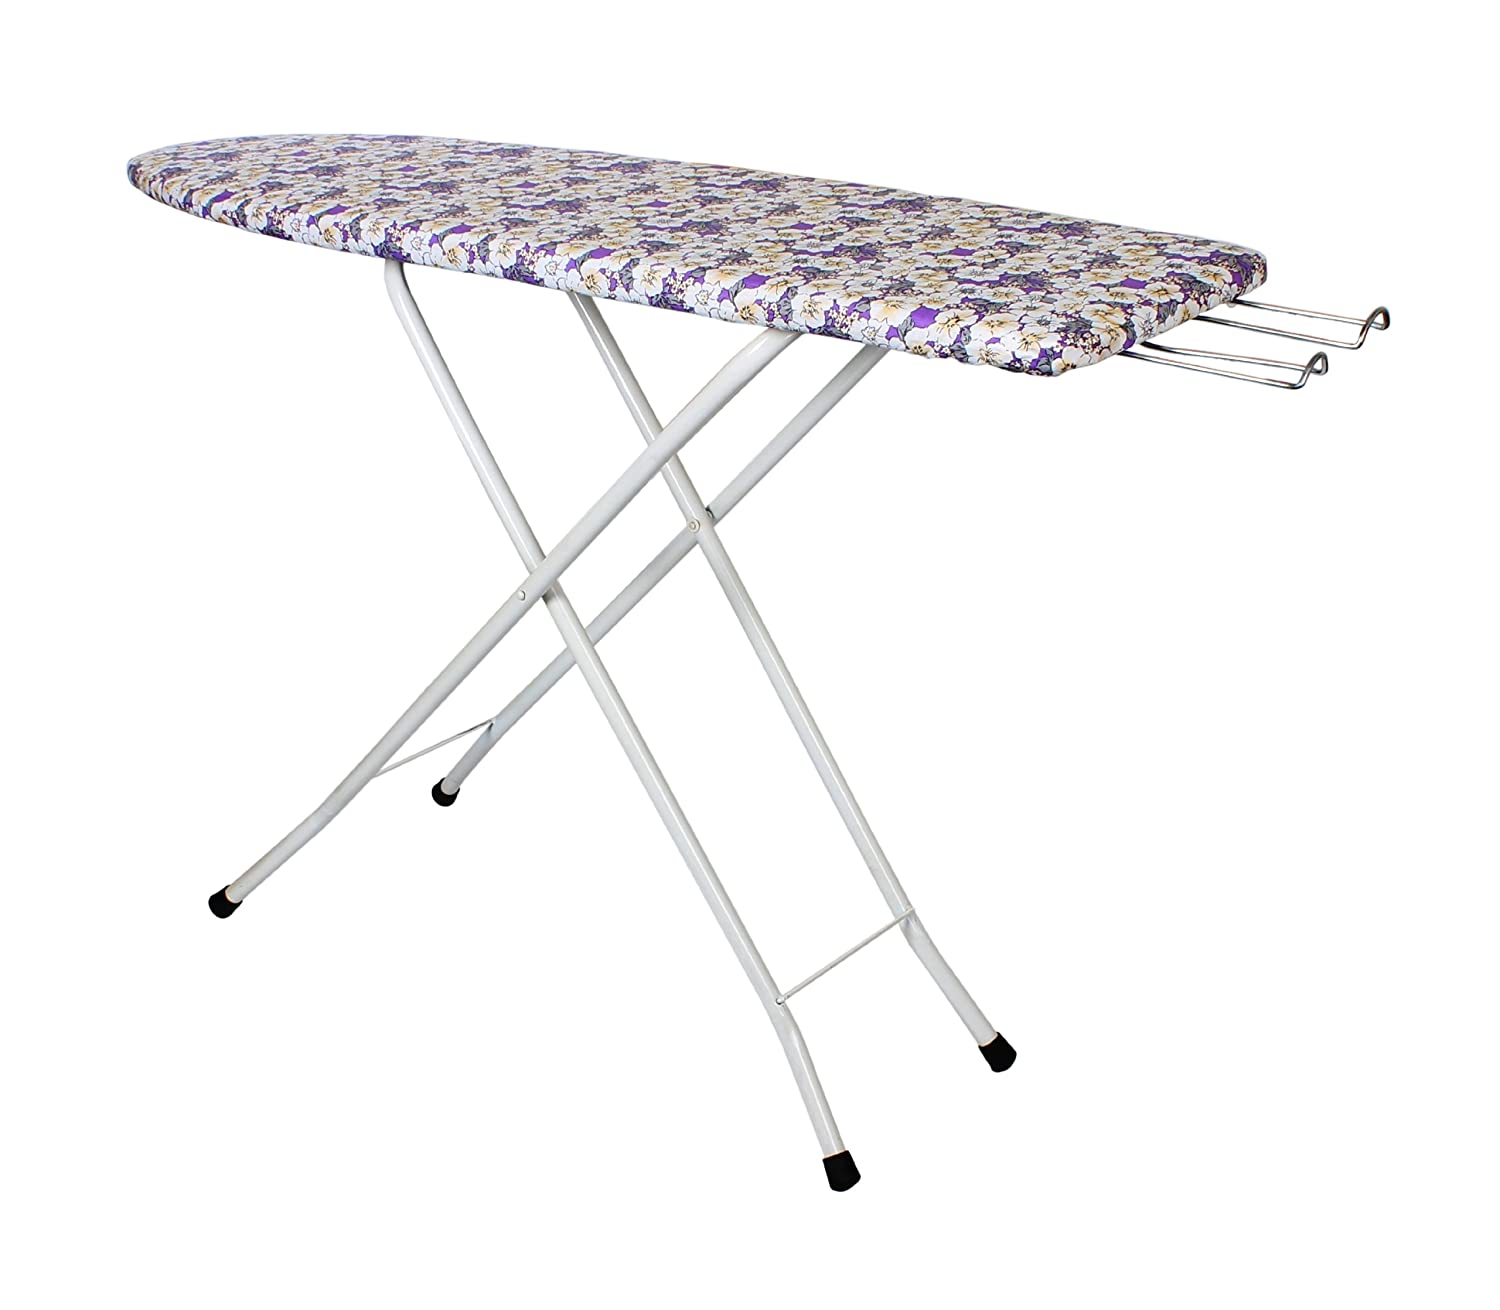 Cipla Plast Ciplaplast Folding Ironing Board / Table   Wooden  122 X 47Cm  available at Amazon for Rs.1200